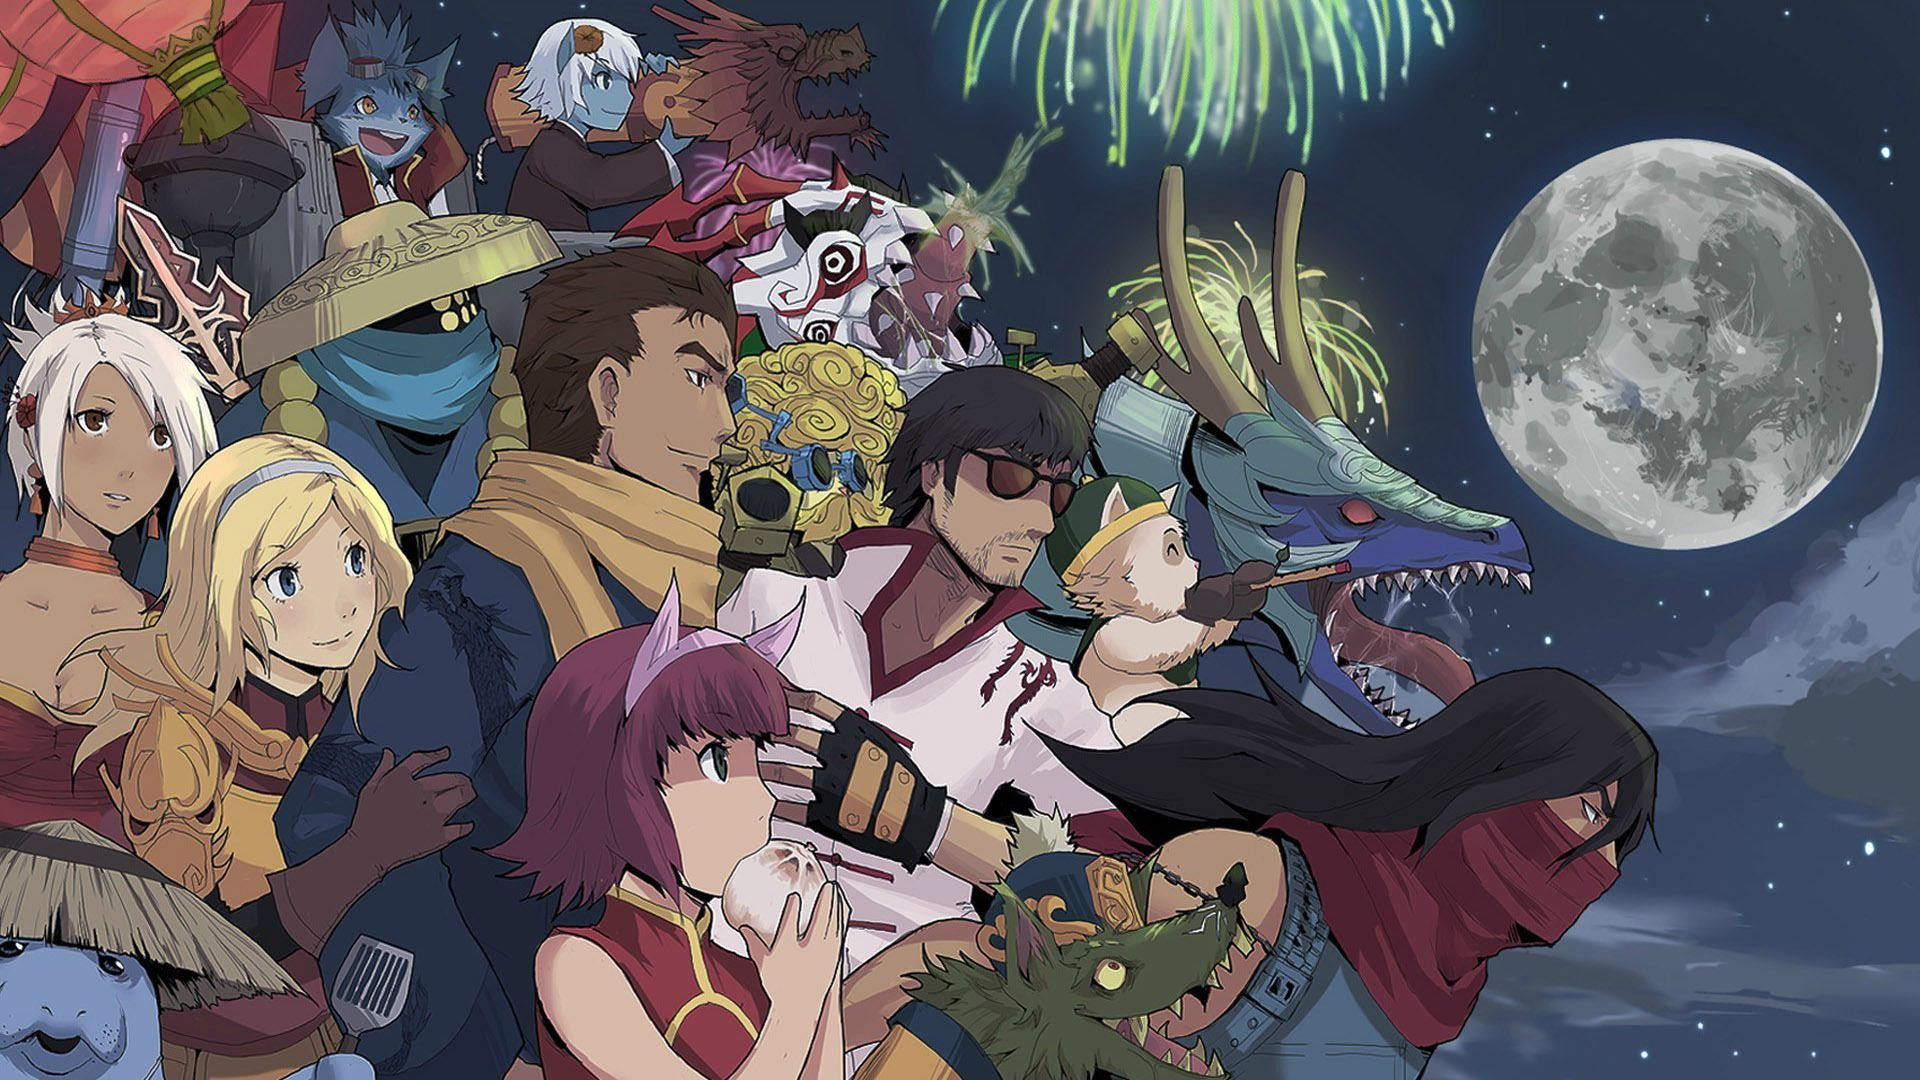 Pin by malachi vesey on league of legends anime art